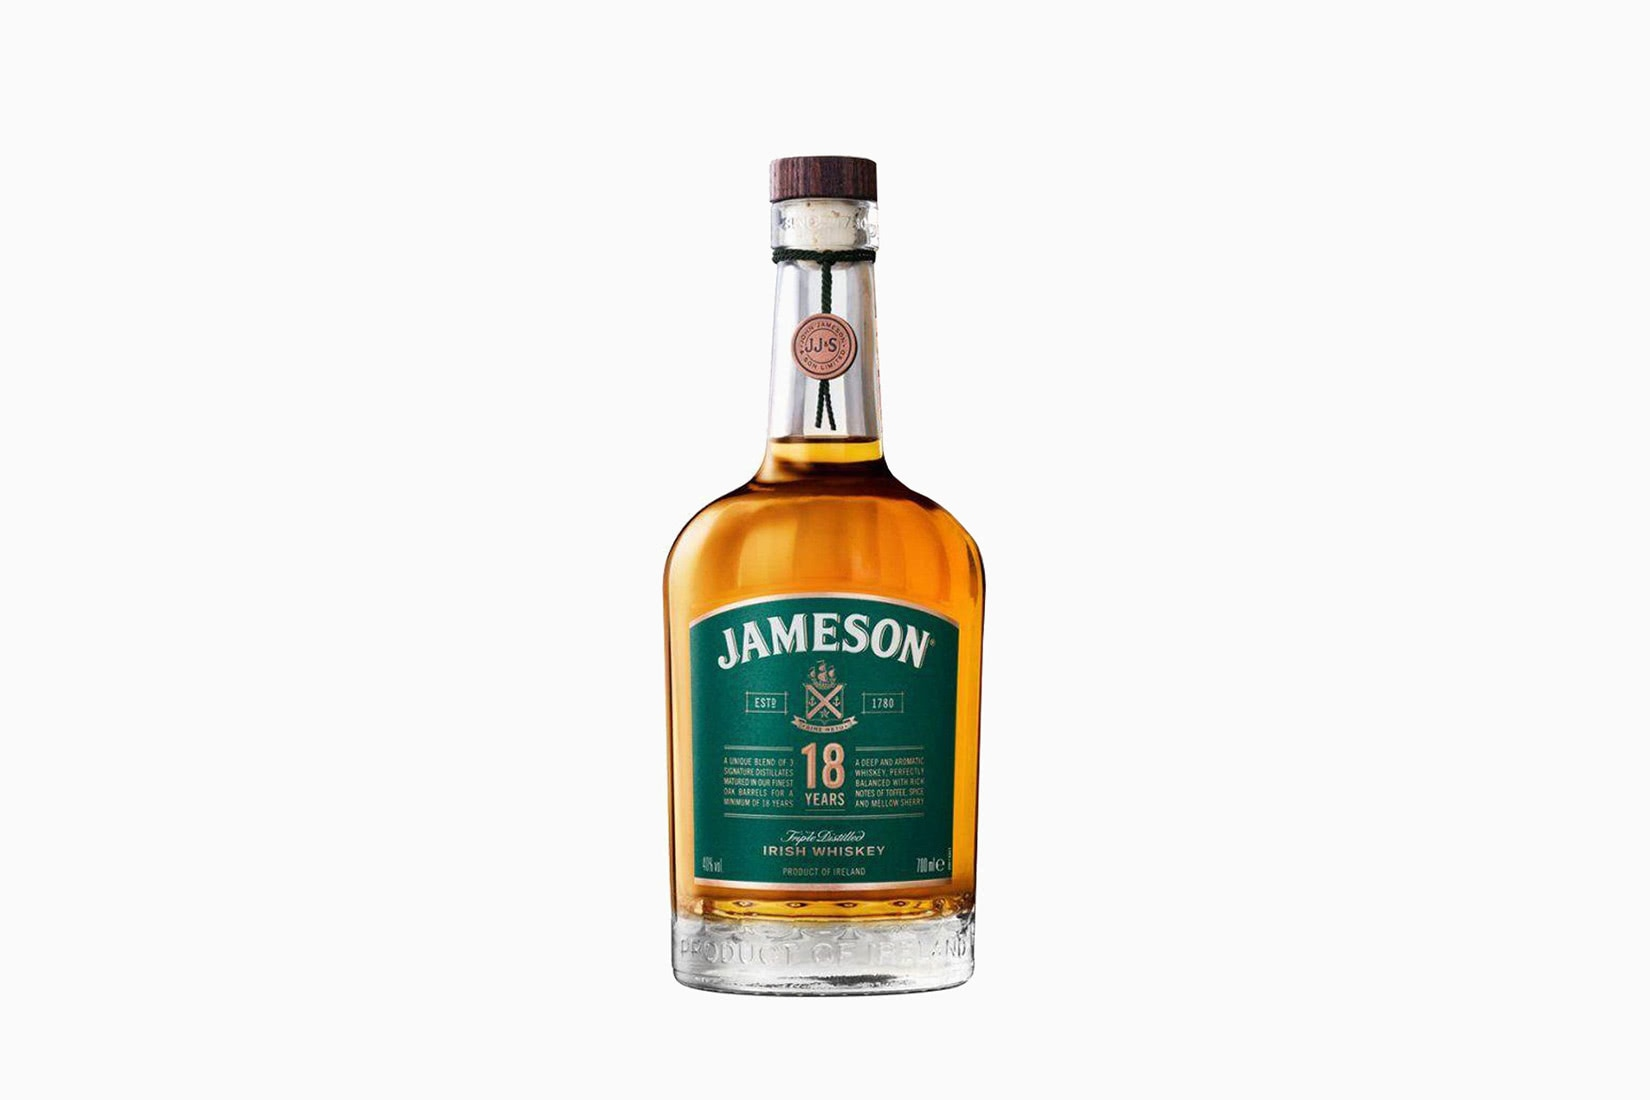 jameson whiskey bottle price size 18 years - Luxe Digital